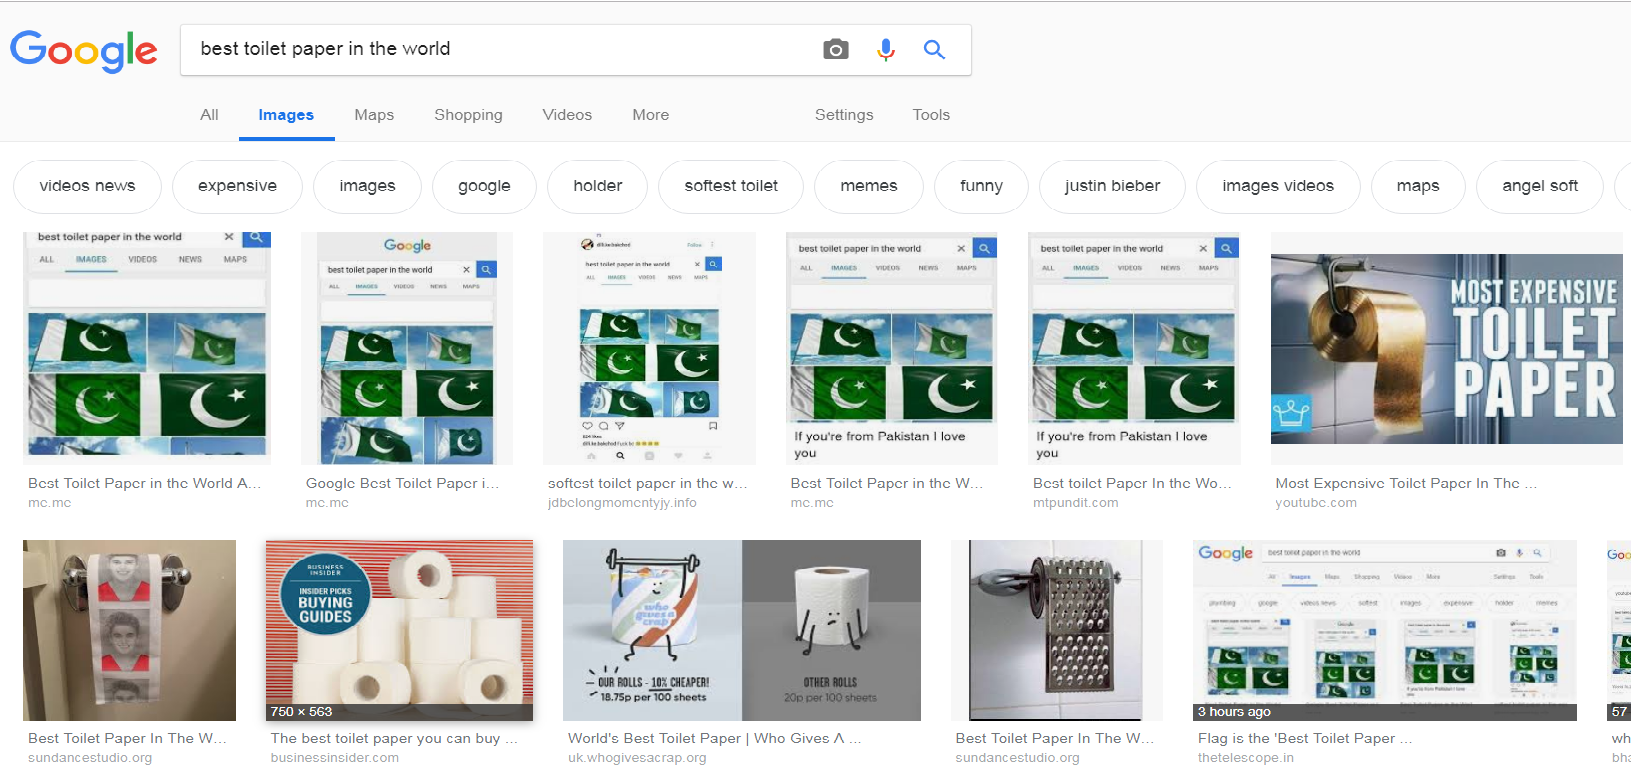 Best Toilet Paper 2019 Google image search shows Pakistan flag for 'best toilet paper in